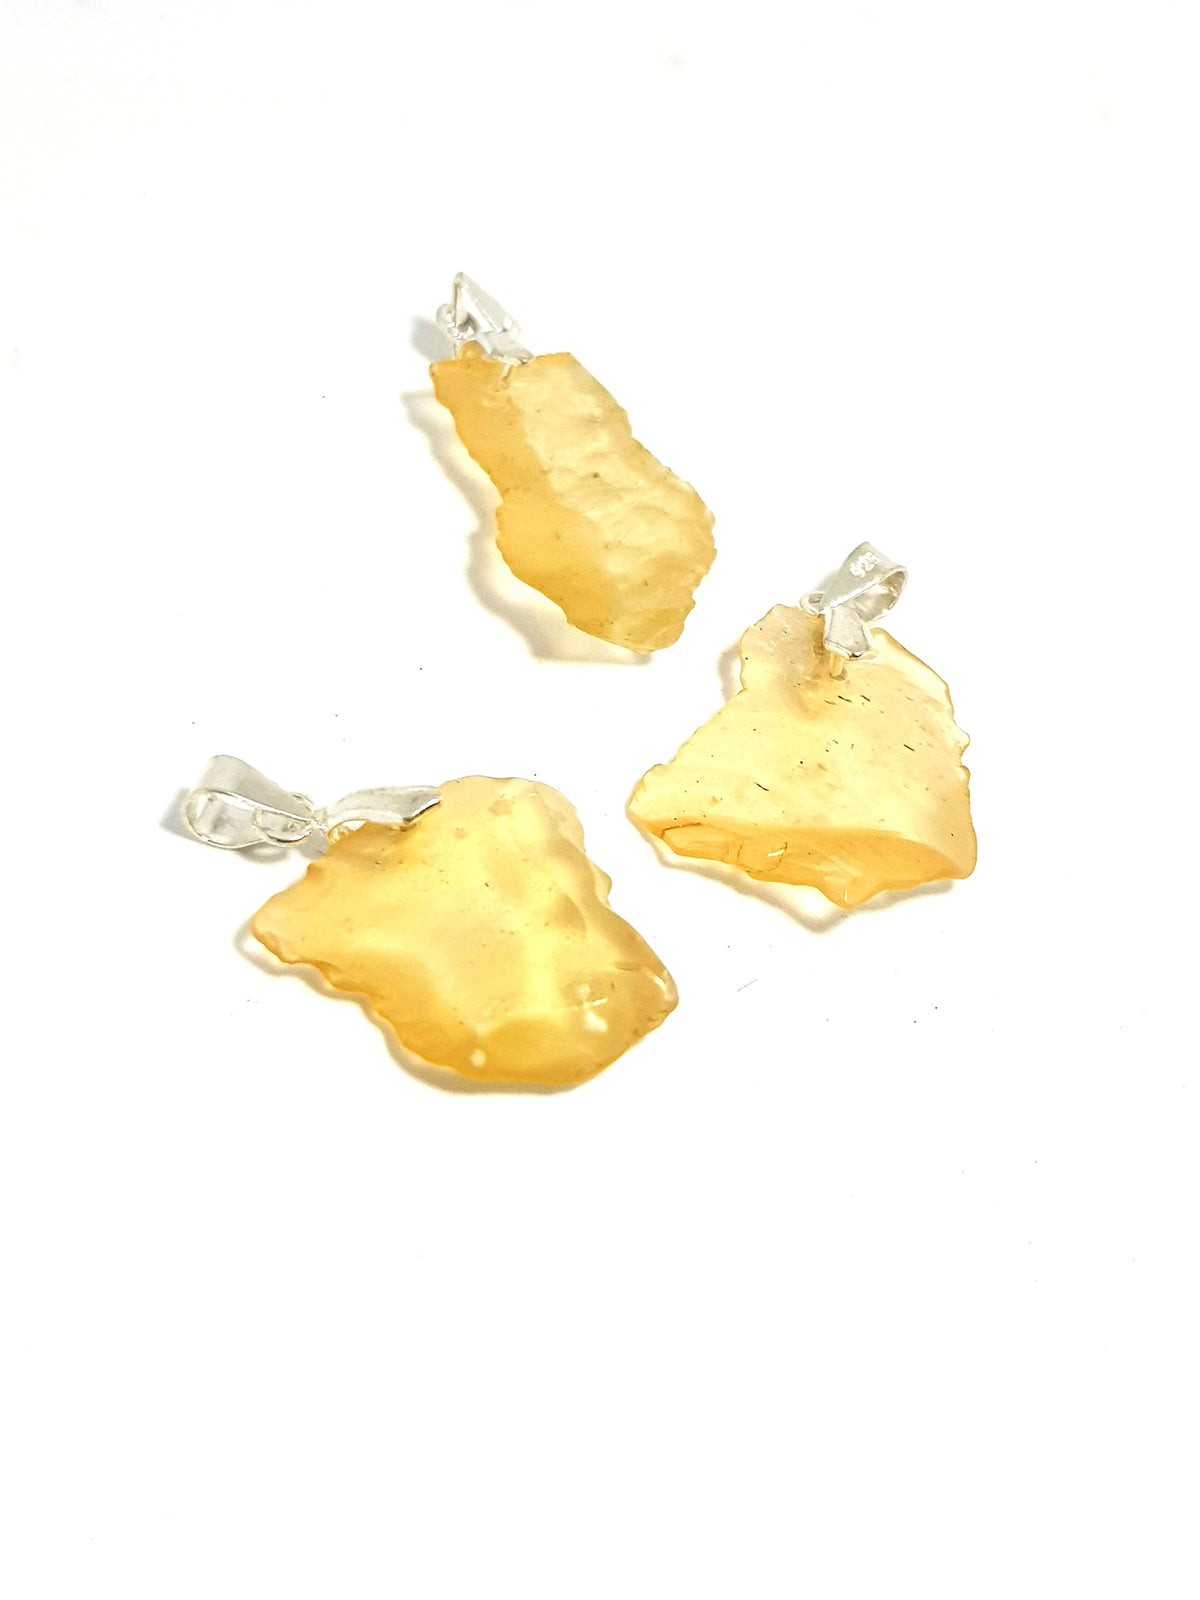 Libyan Desert Glass Pendant - The Science of Magic